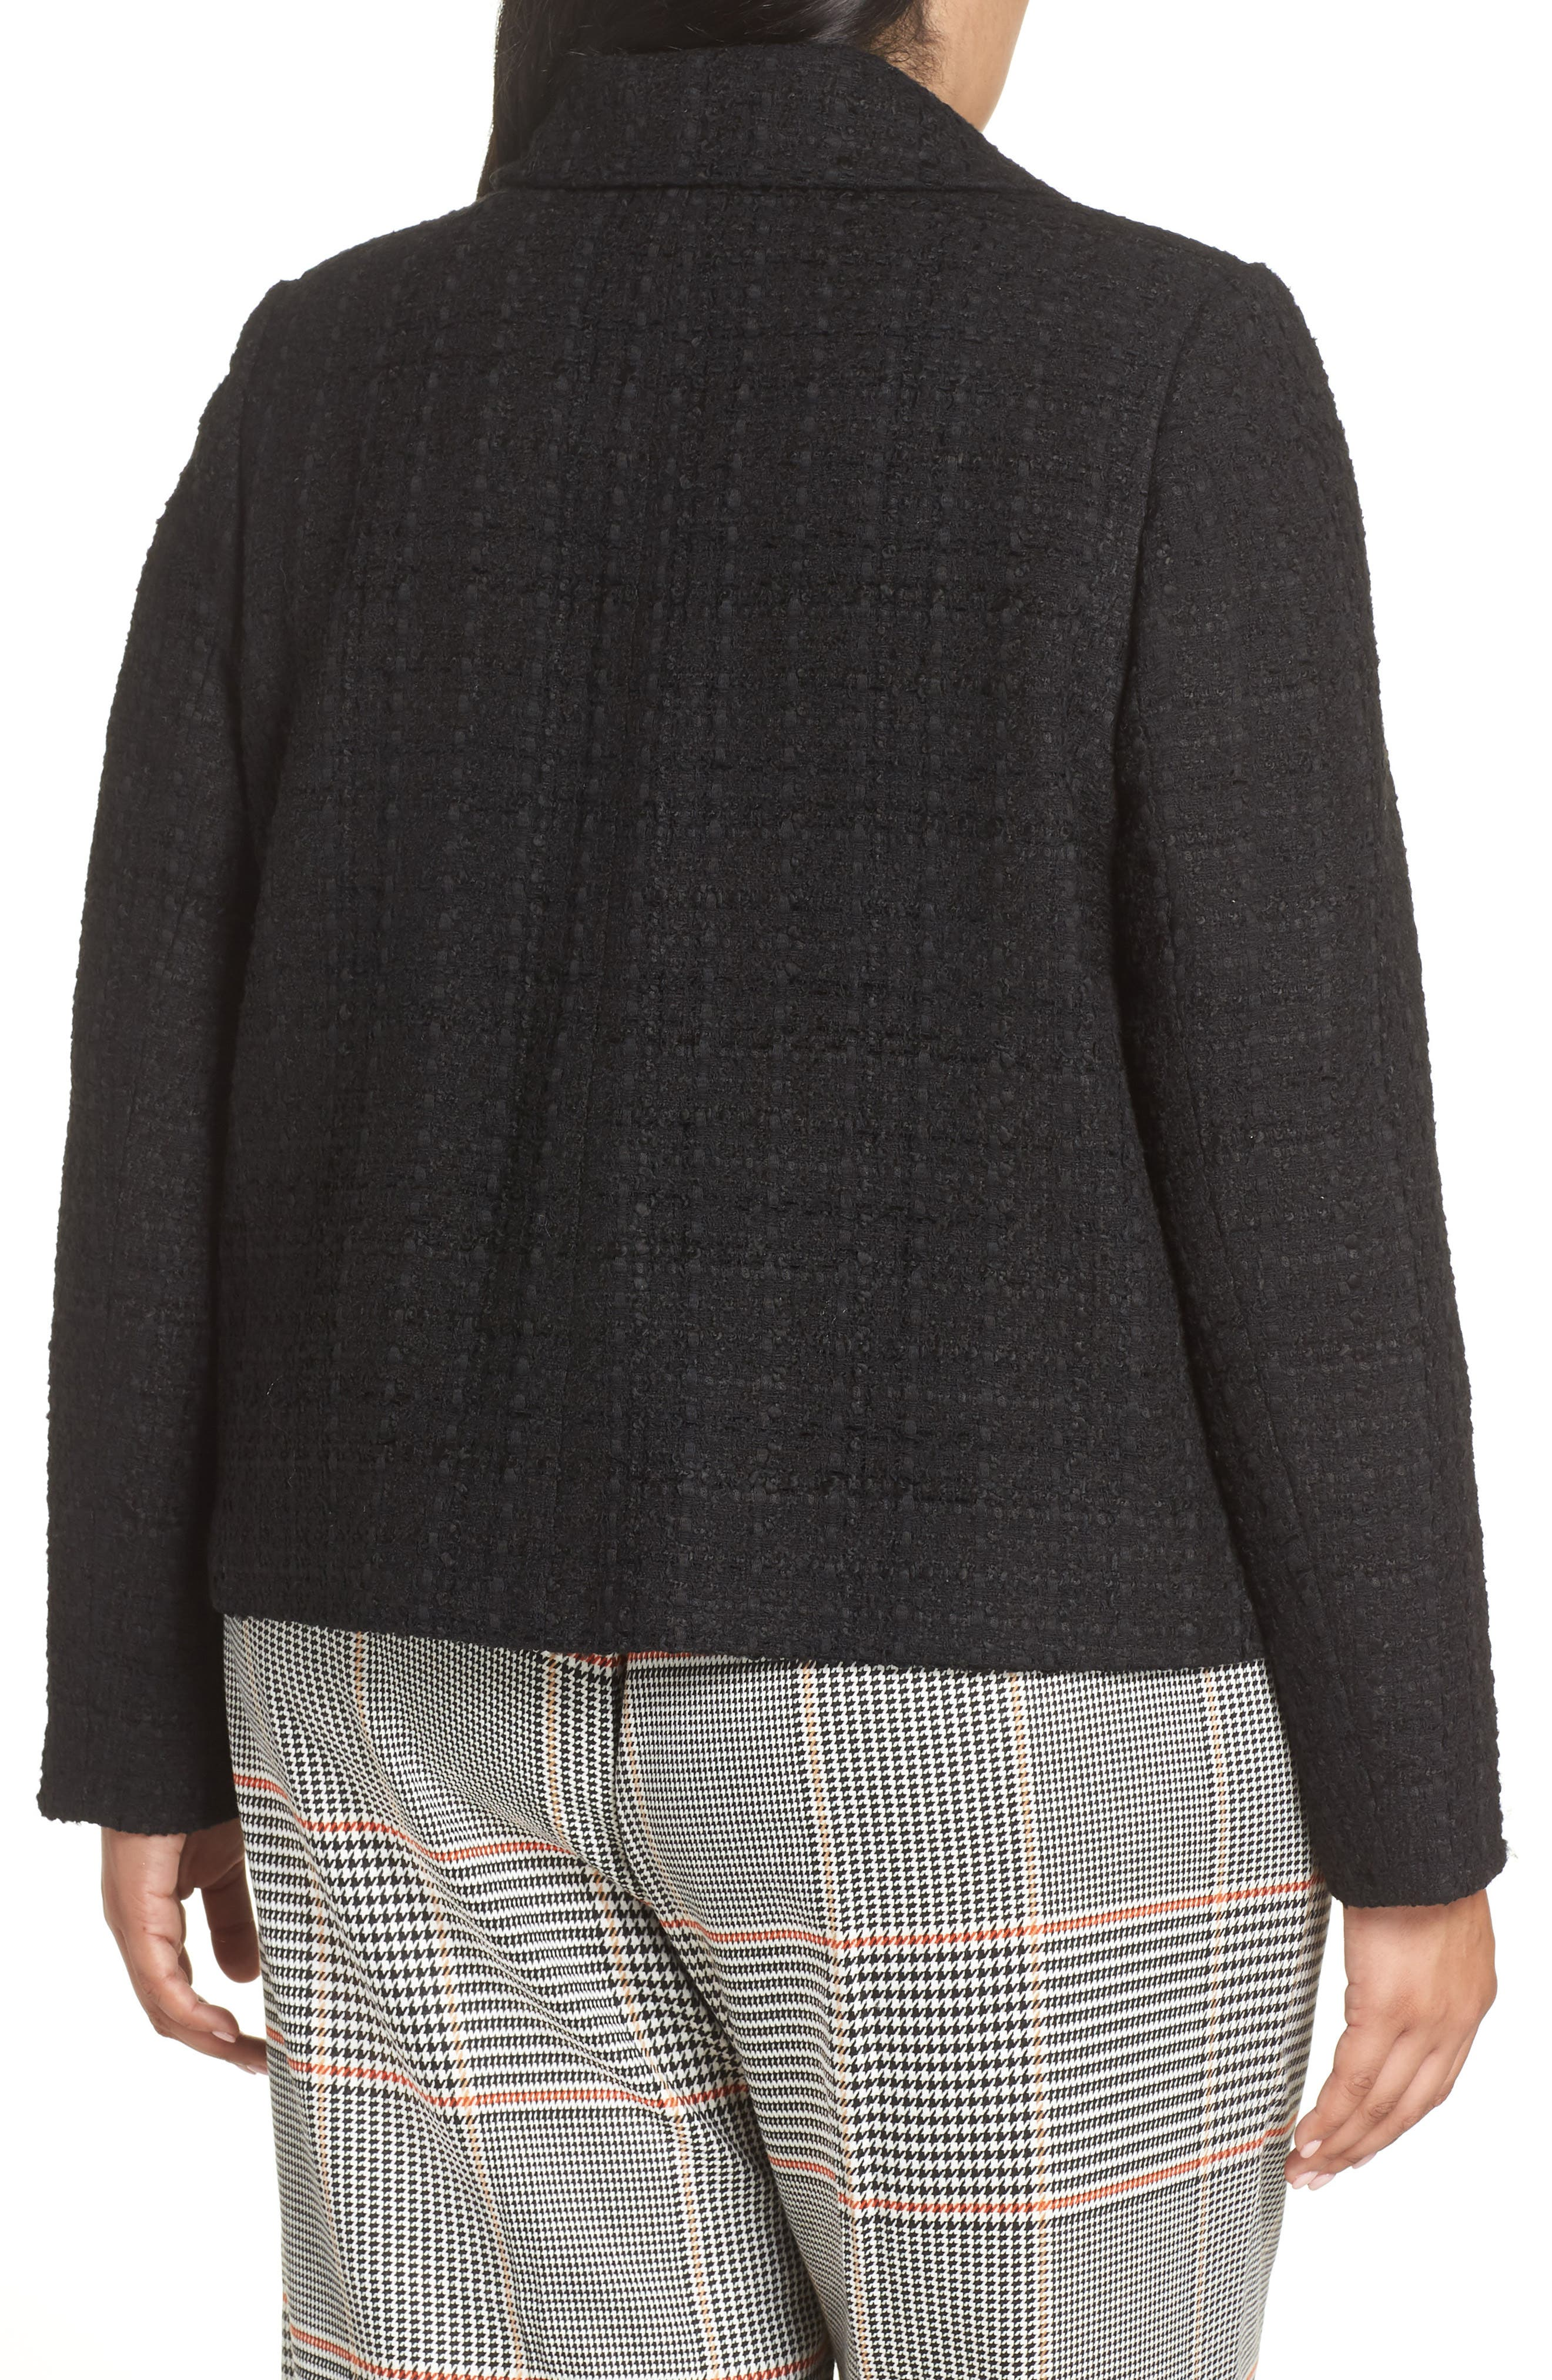 x Atlantic-Pacific Bow Detail Tweed Jacket,                             Alternate thumbnail 2, color,                             001